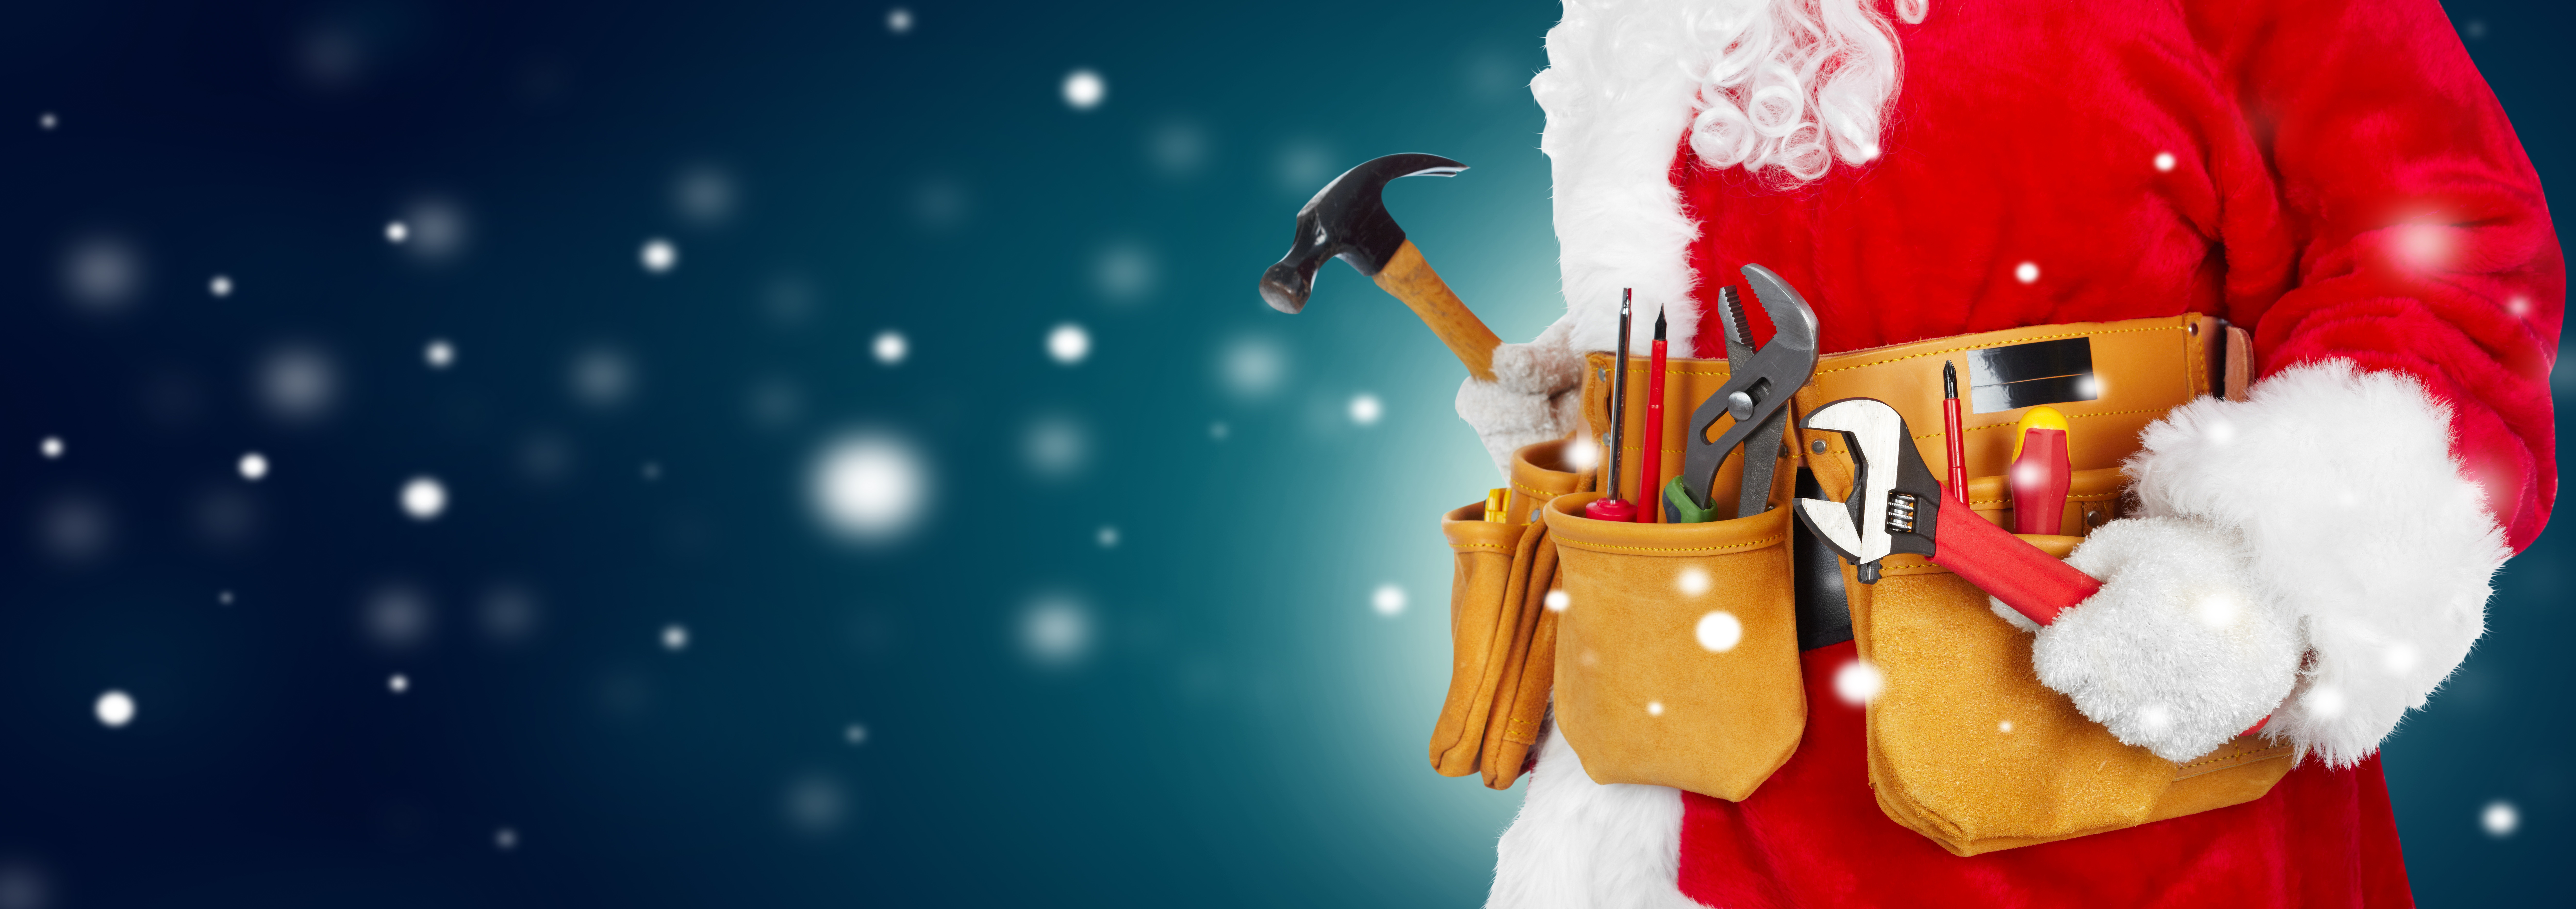 Avoid Harming Your Plumbing During Holidays | Terry's Plumbing